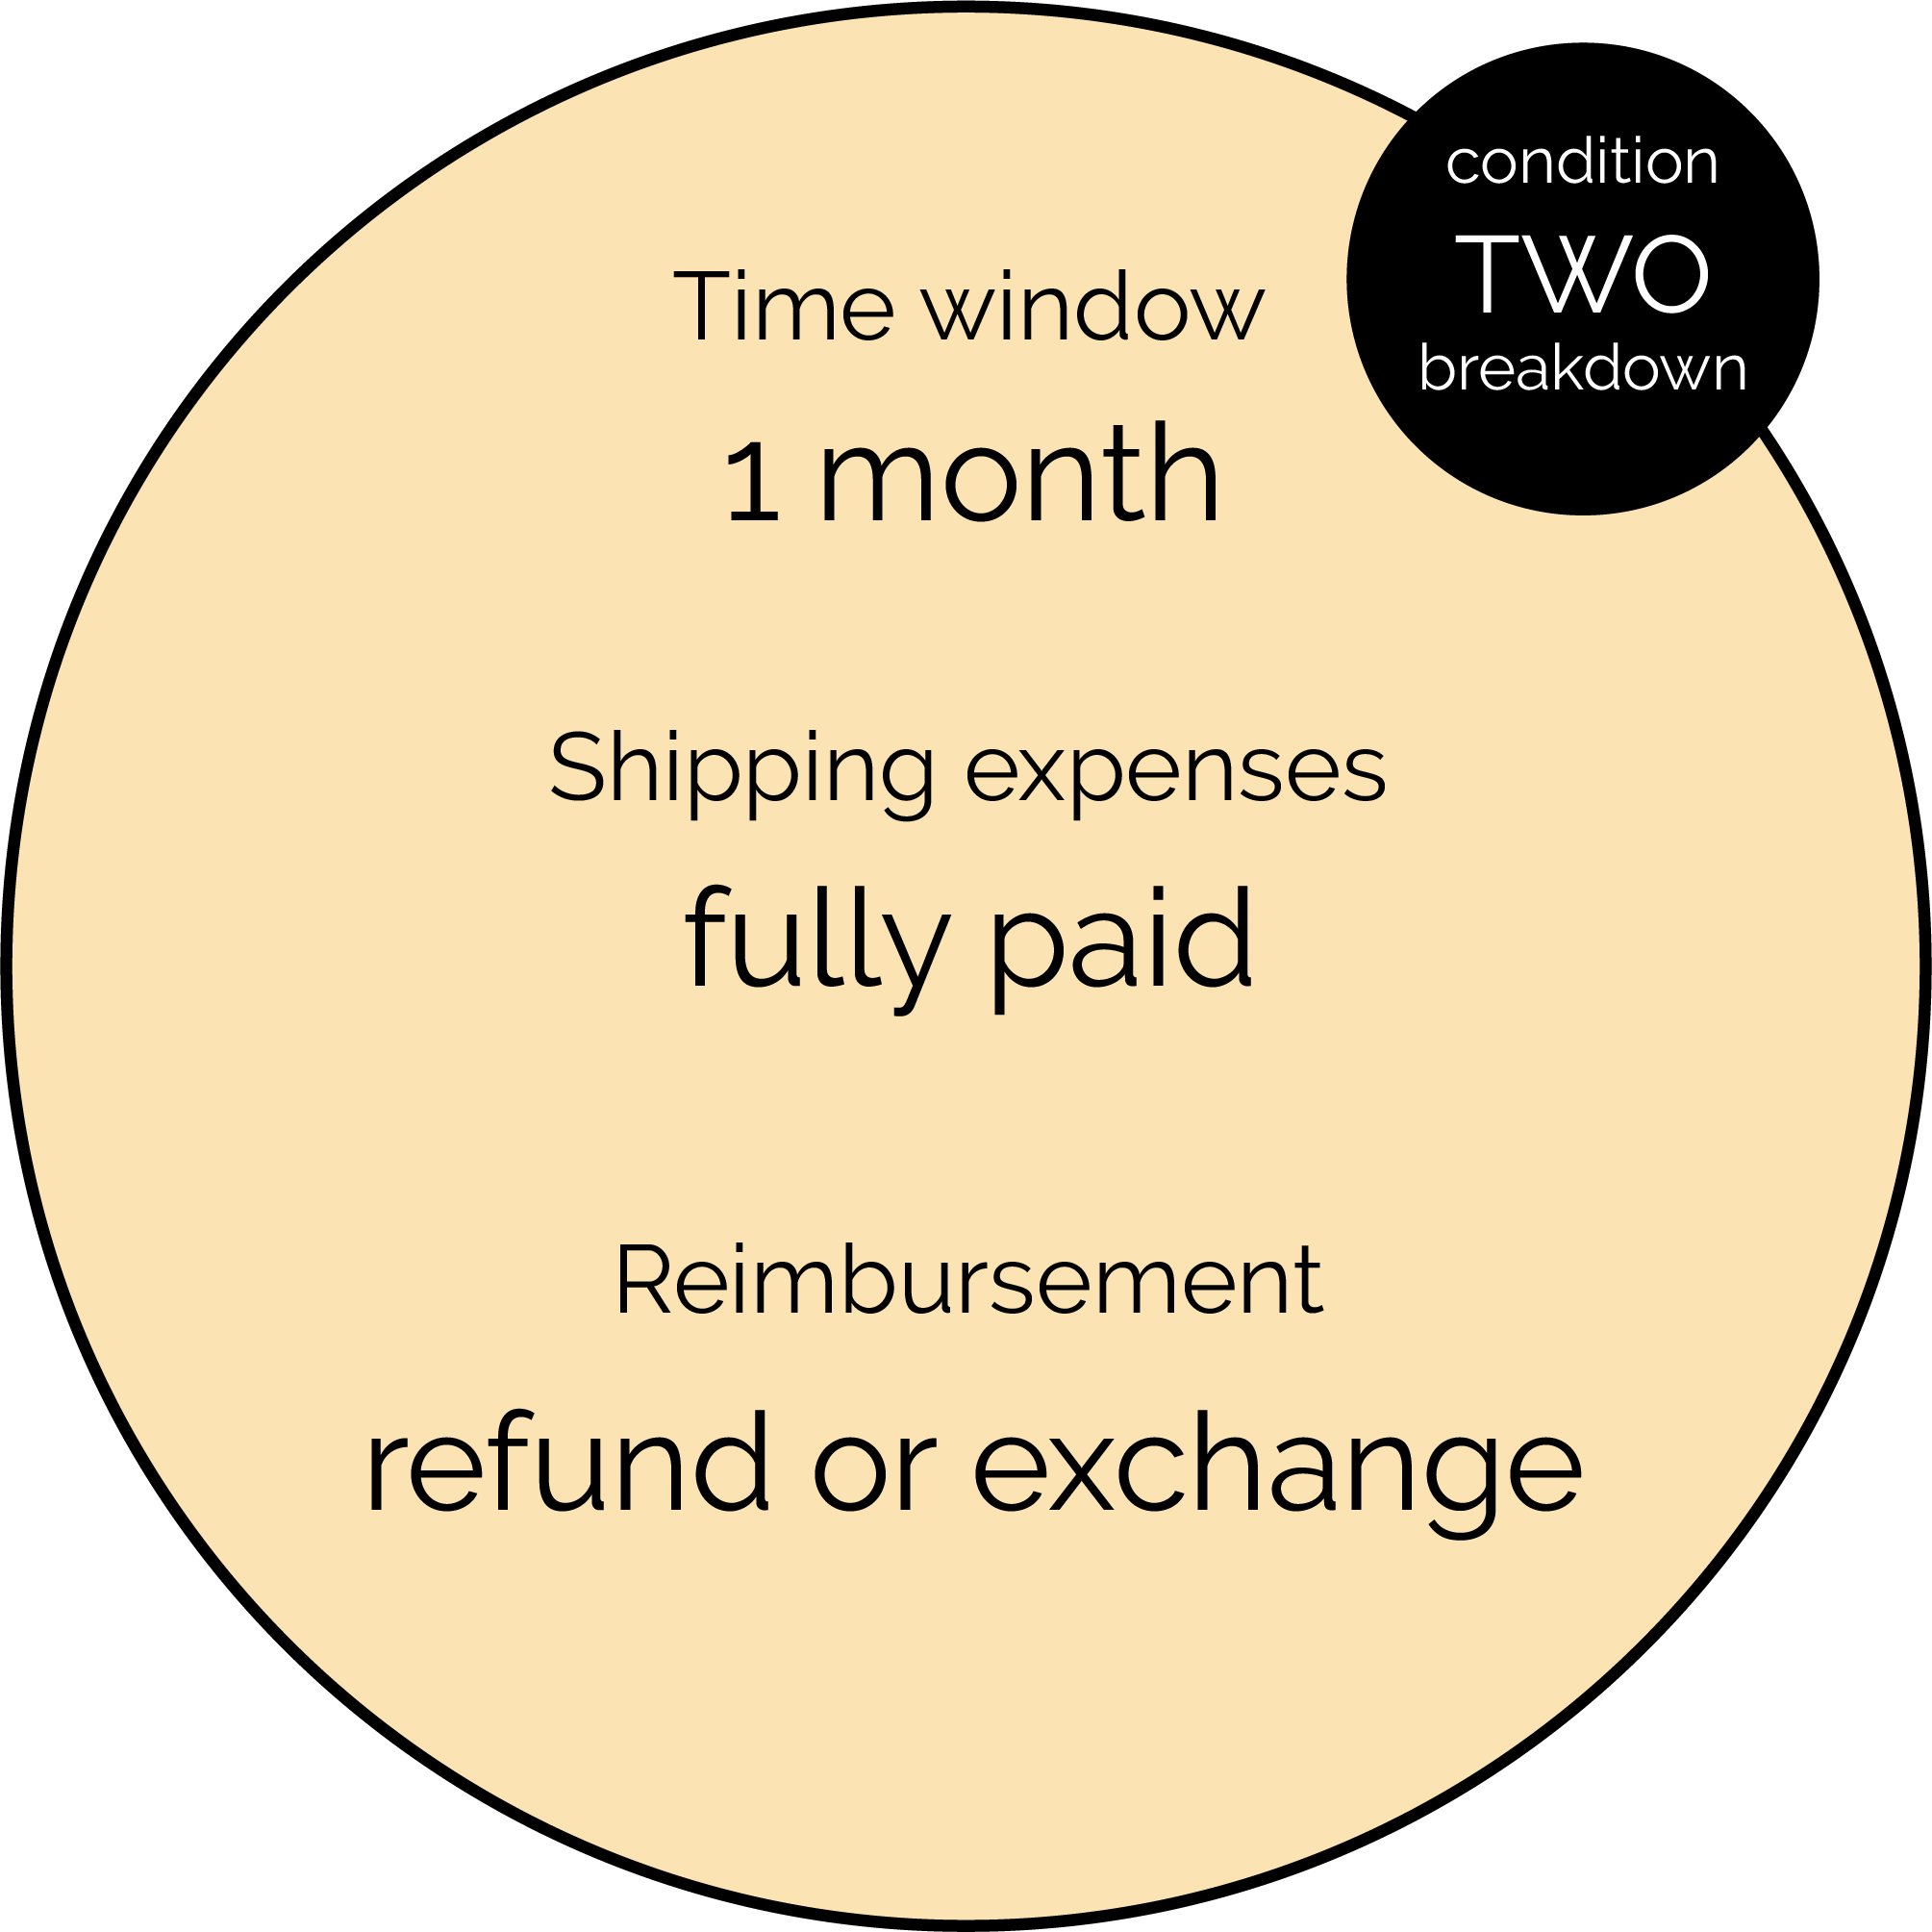 Condition two breakdown - Time window: 1 month, Shipping expenses: fully paid, Reimbursement: refund or exchange.